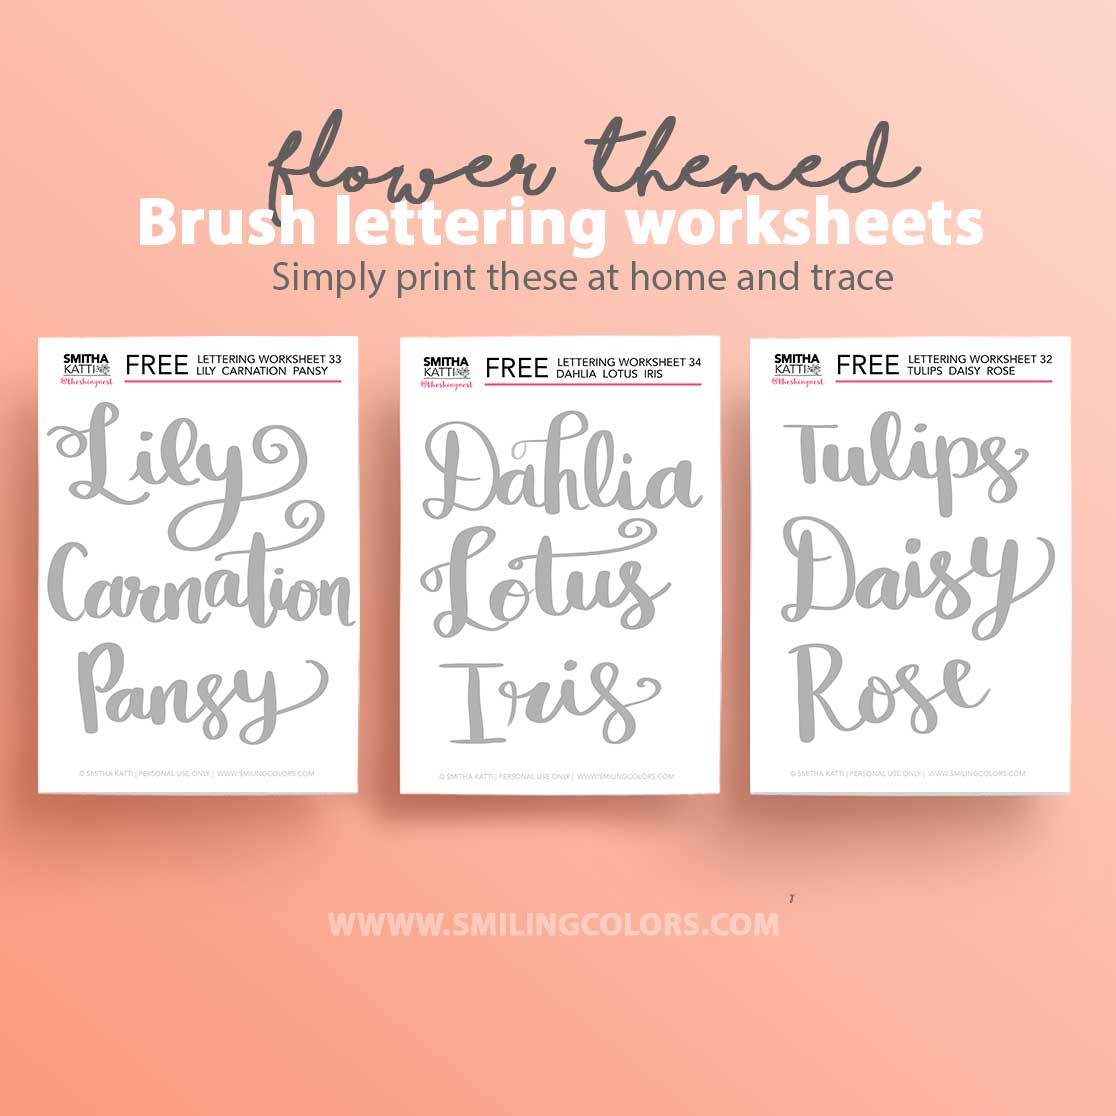 photo about Brush Lettering Practice Sheets Printable named Flower themed brush lettering train sheets printable free of charge